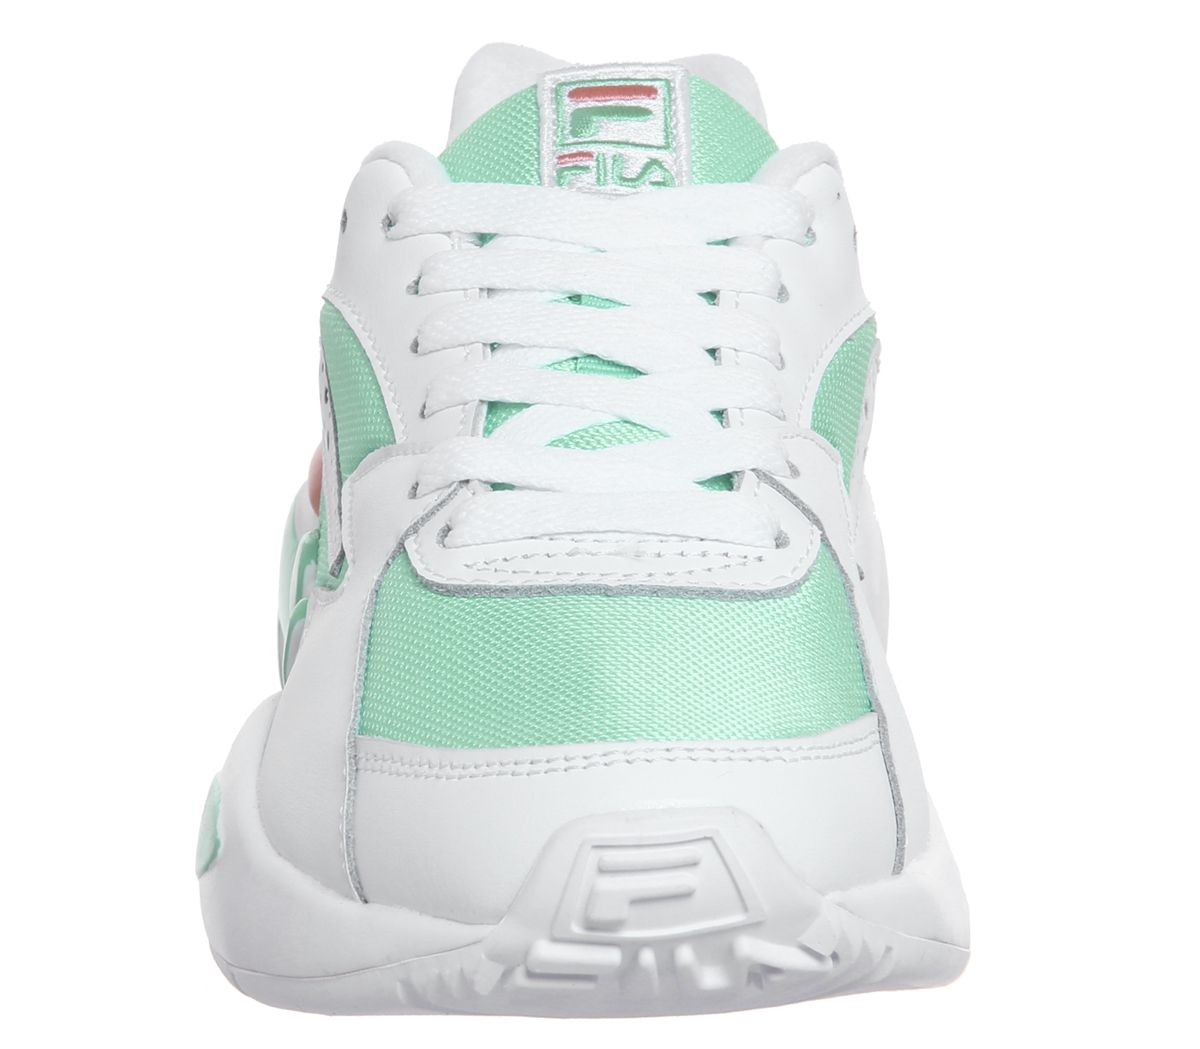 9637a98dbdce3 Womens Fila Mindblower Trainers White Cockatoo Desert Flower ...